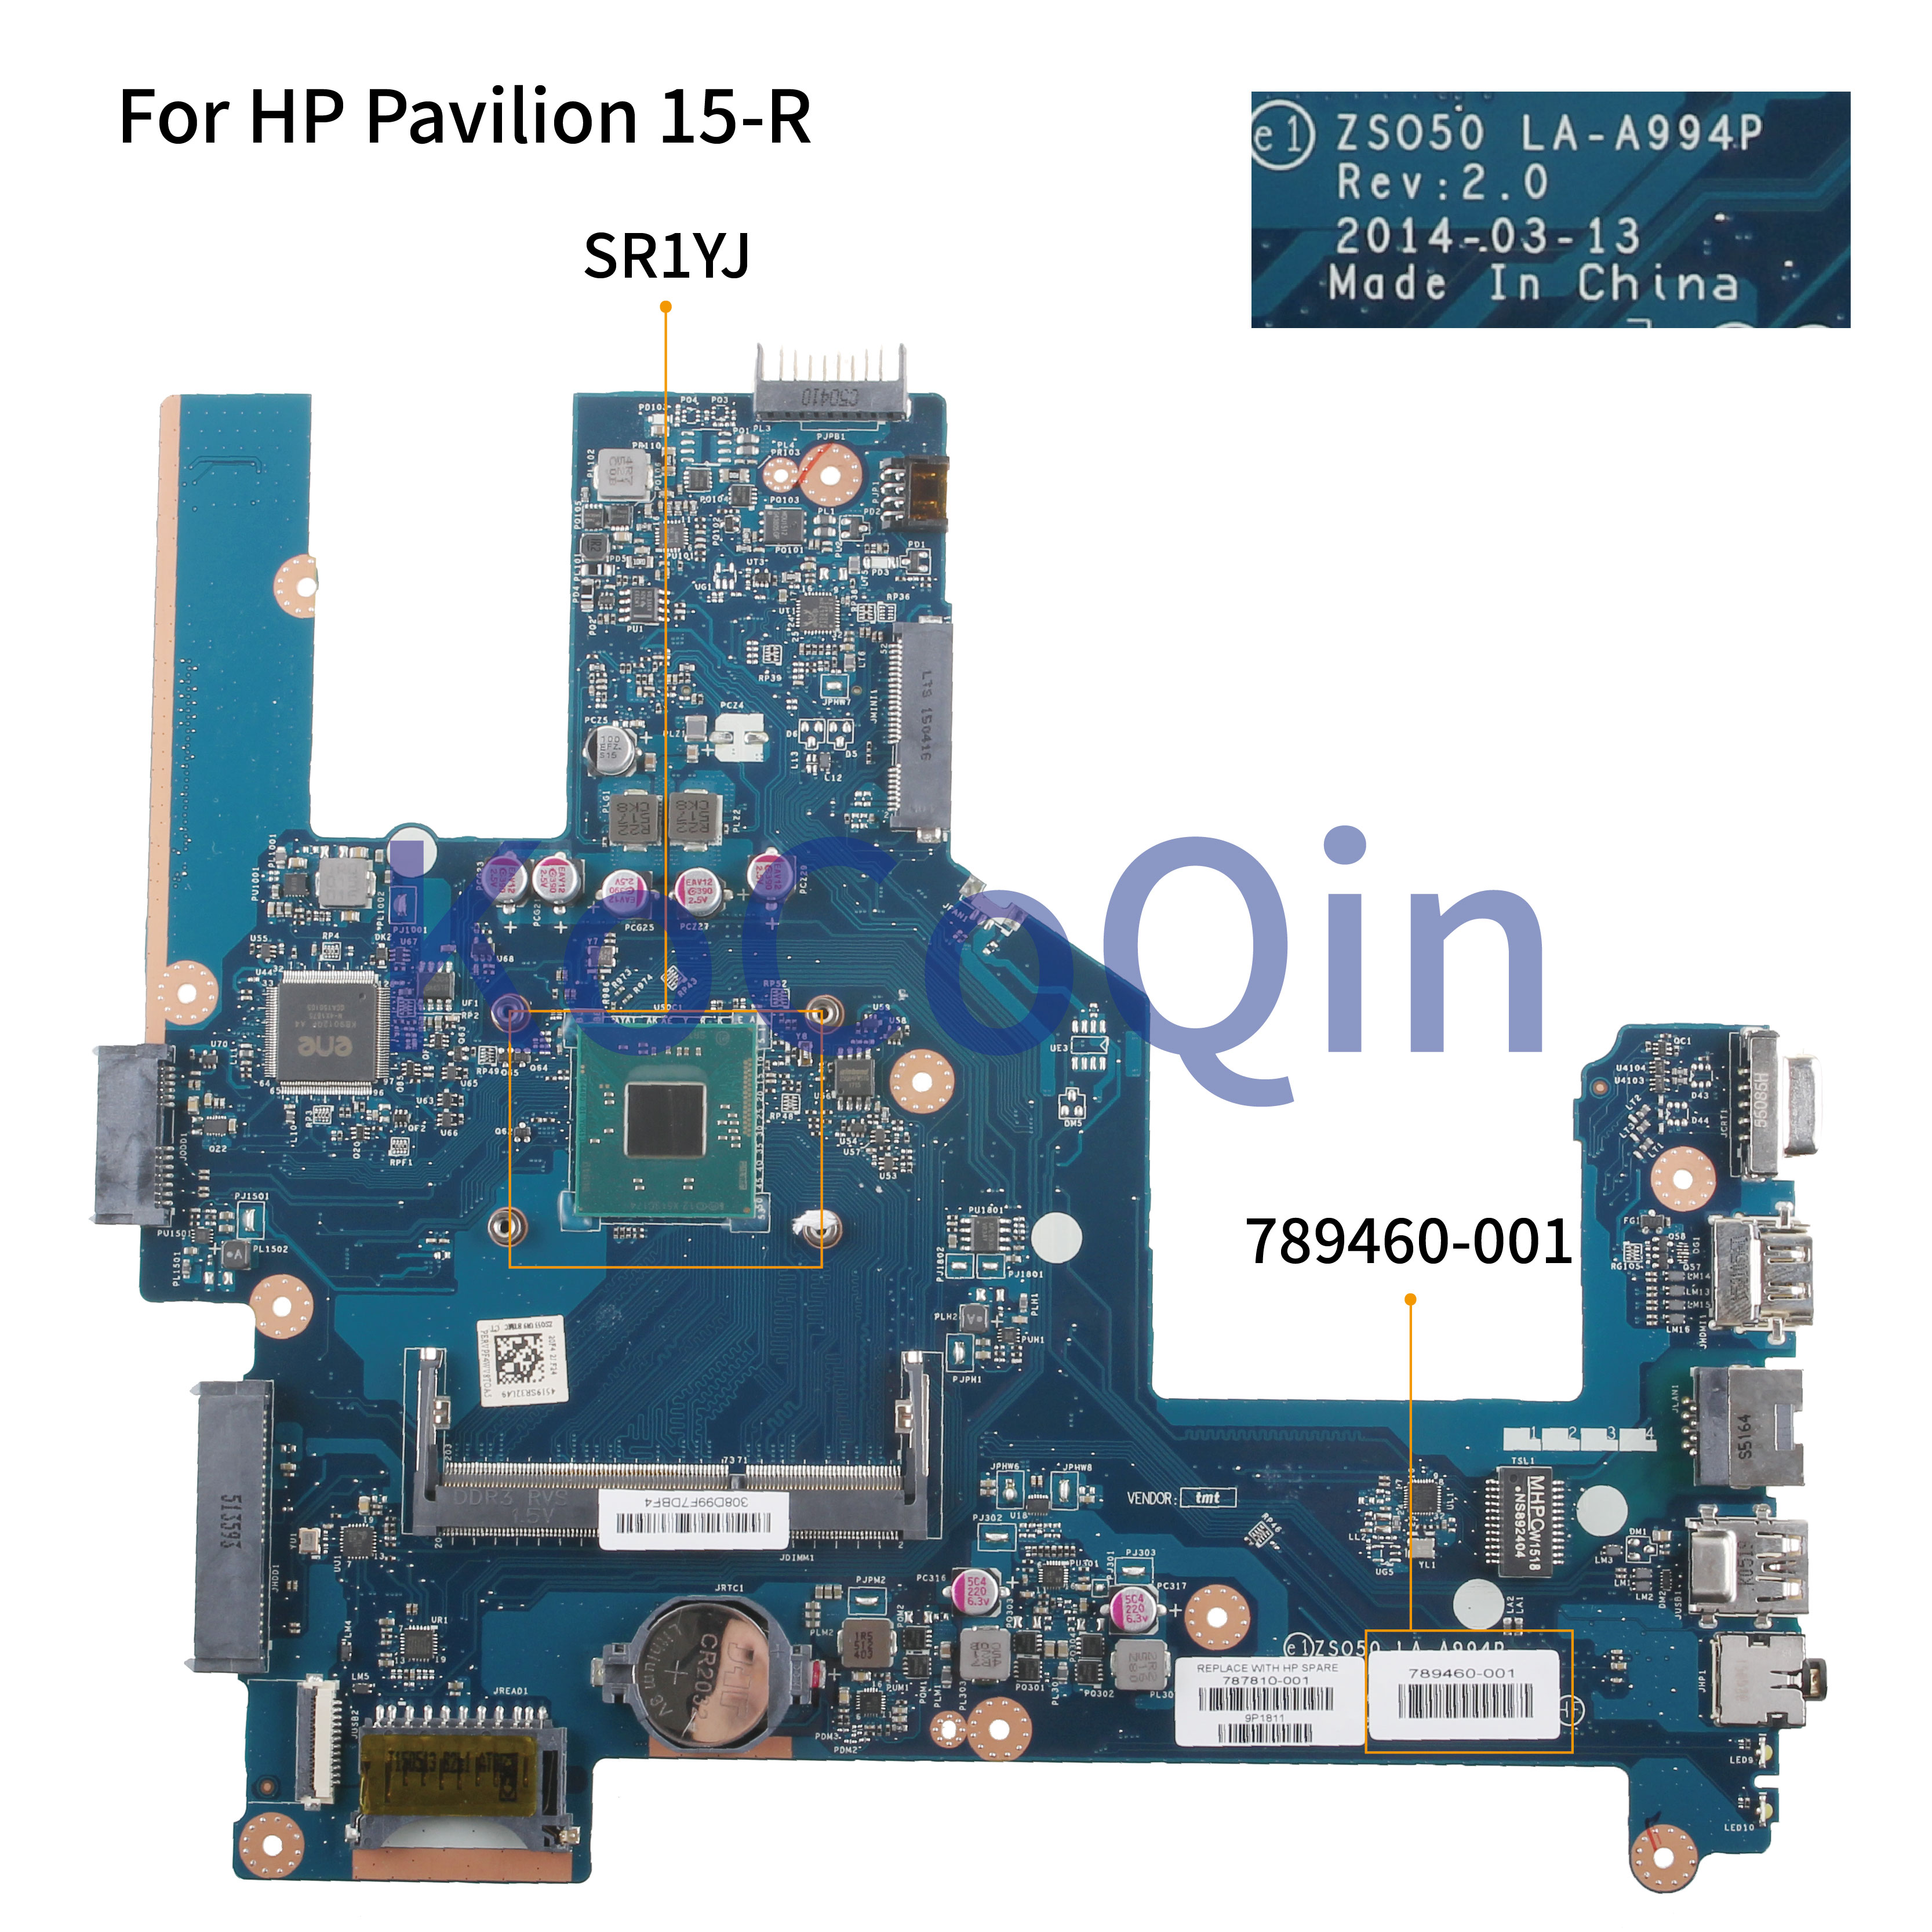 KoCoQin Laptop Motherboard For HP Para 15-R 15T-R 250 G3 Core N2840 SR1YJ Mainboard ZS050 LA-A994P 789460-001 789460-501 Tested